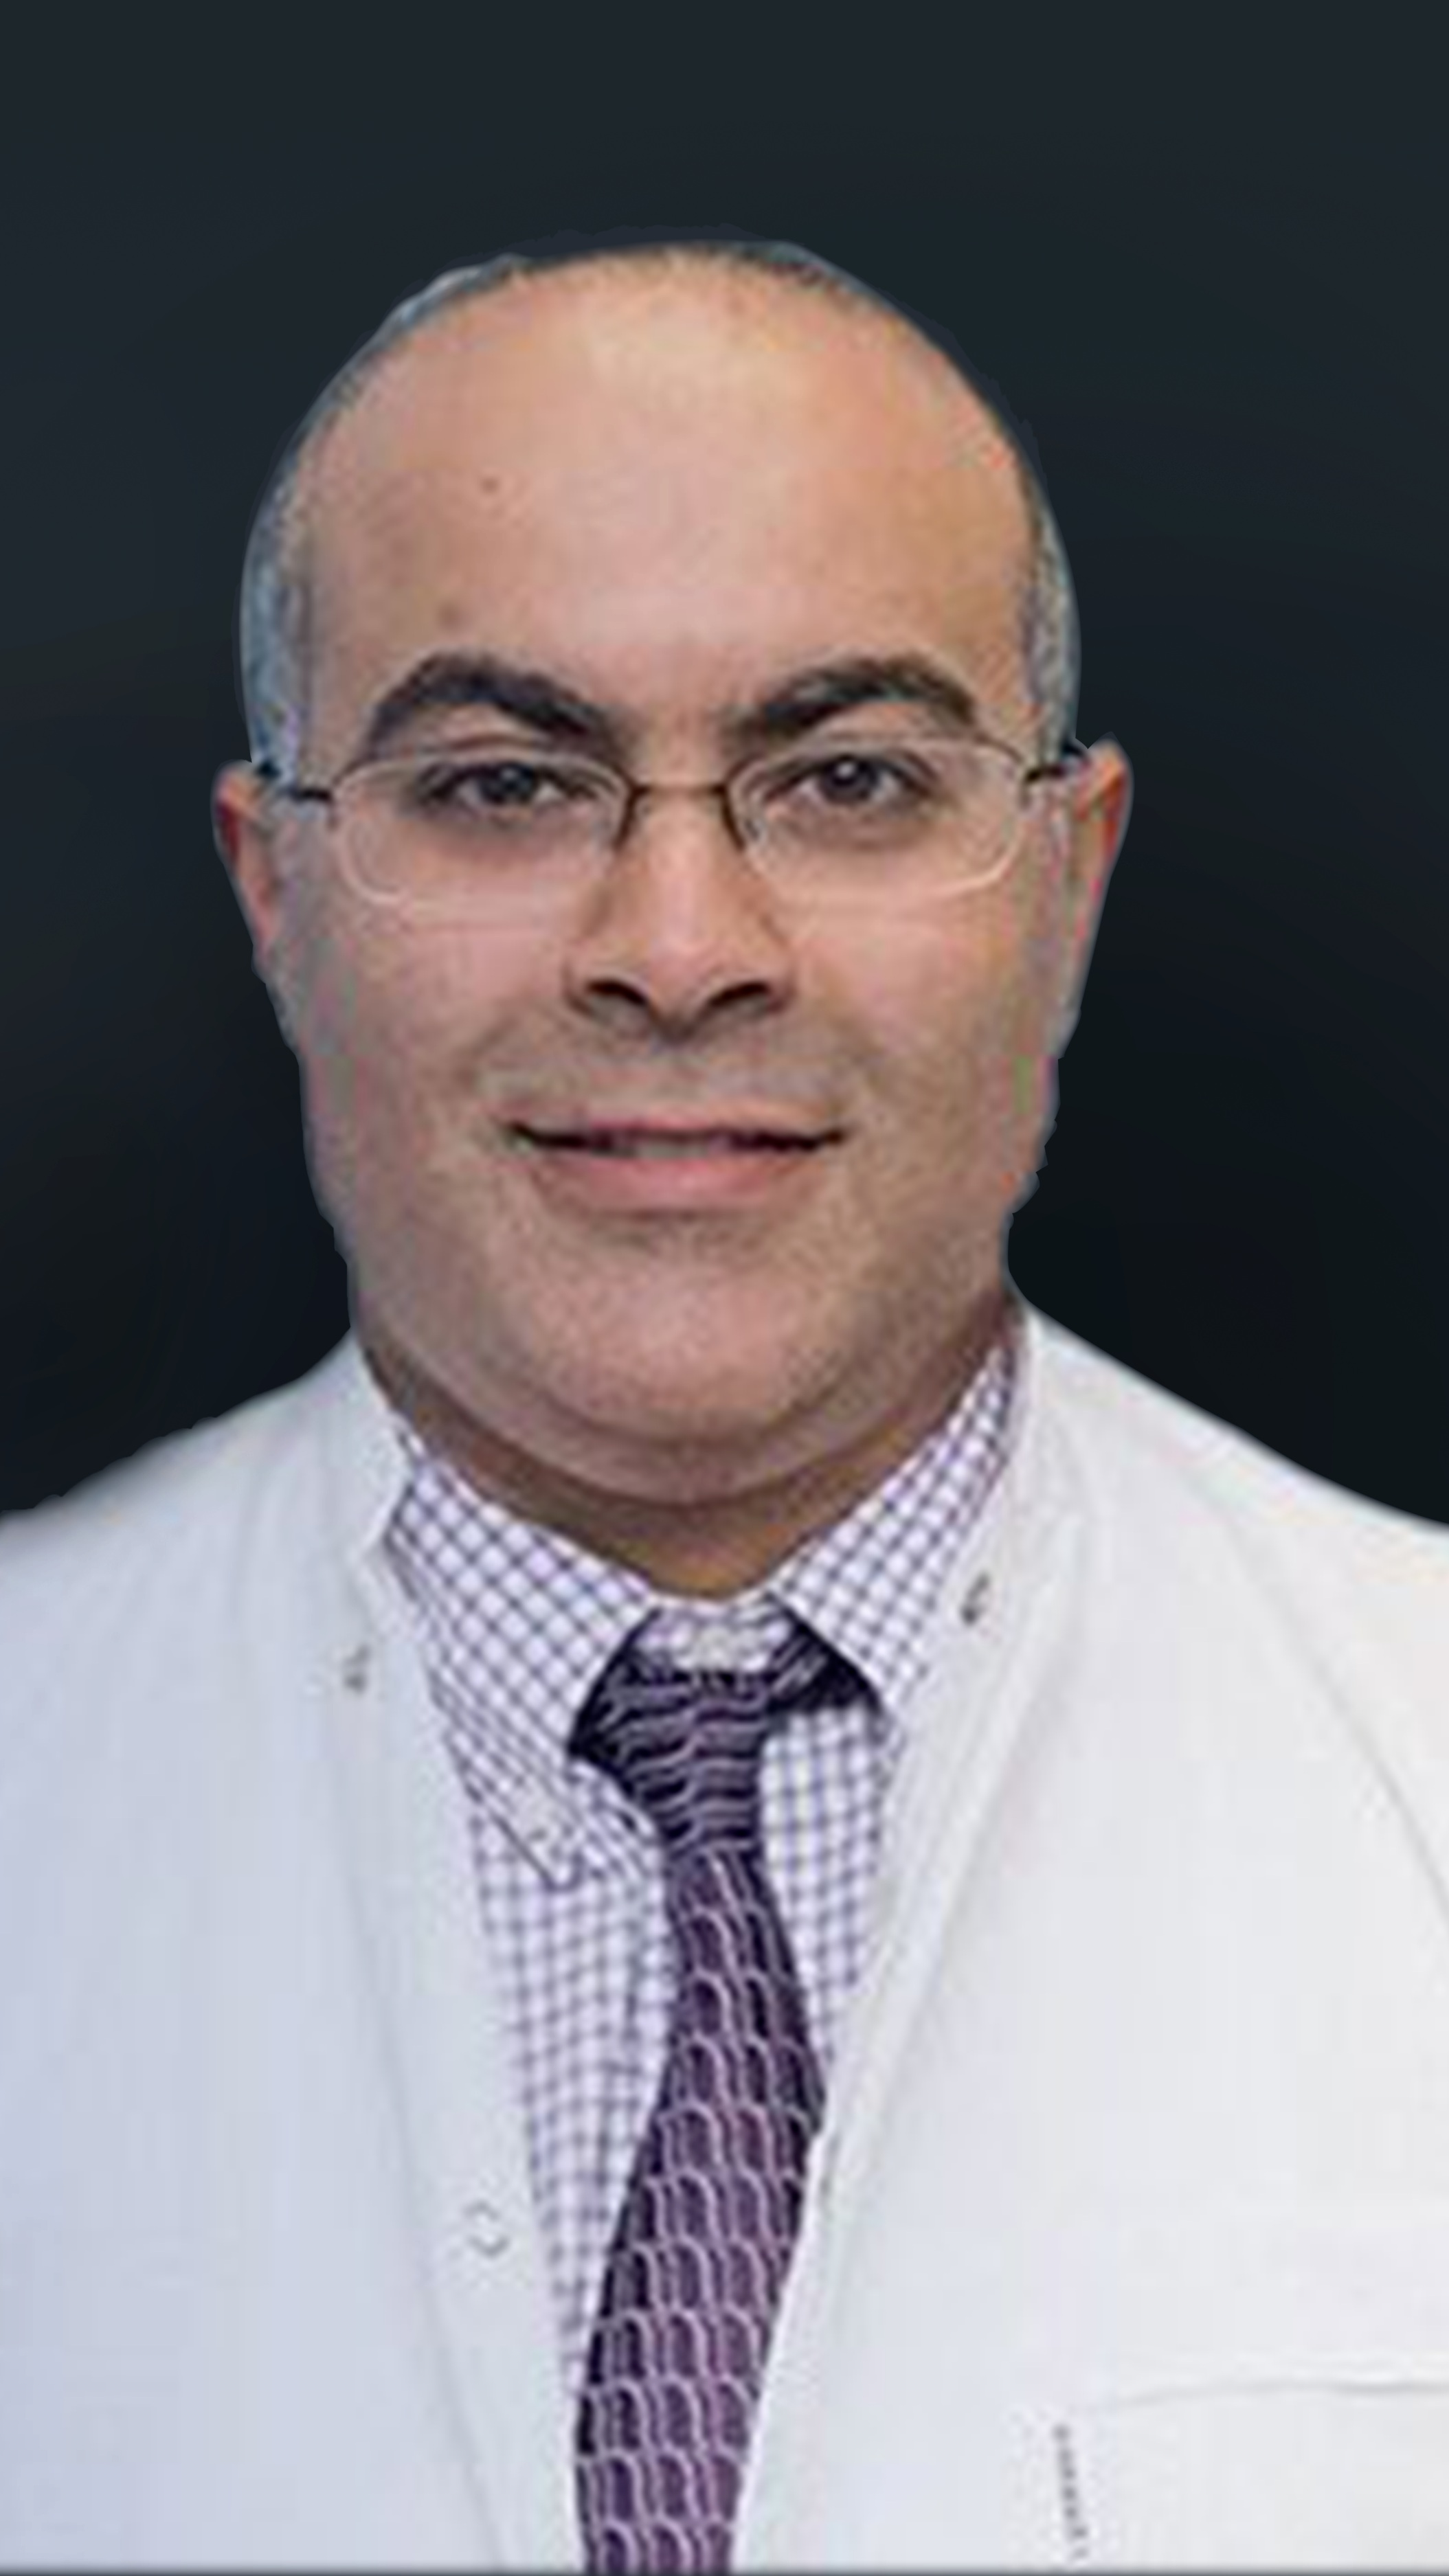 Alaa Ahmed, DMD, DMSc - Faculty member in the department of periodontology at the Boston University Goldman school of dental medicine. He continues to pursue lifelong education through his research at the Forsyth institute.